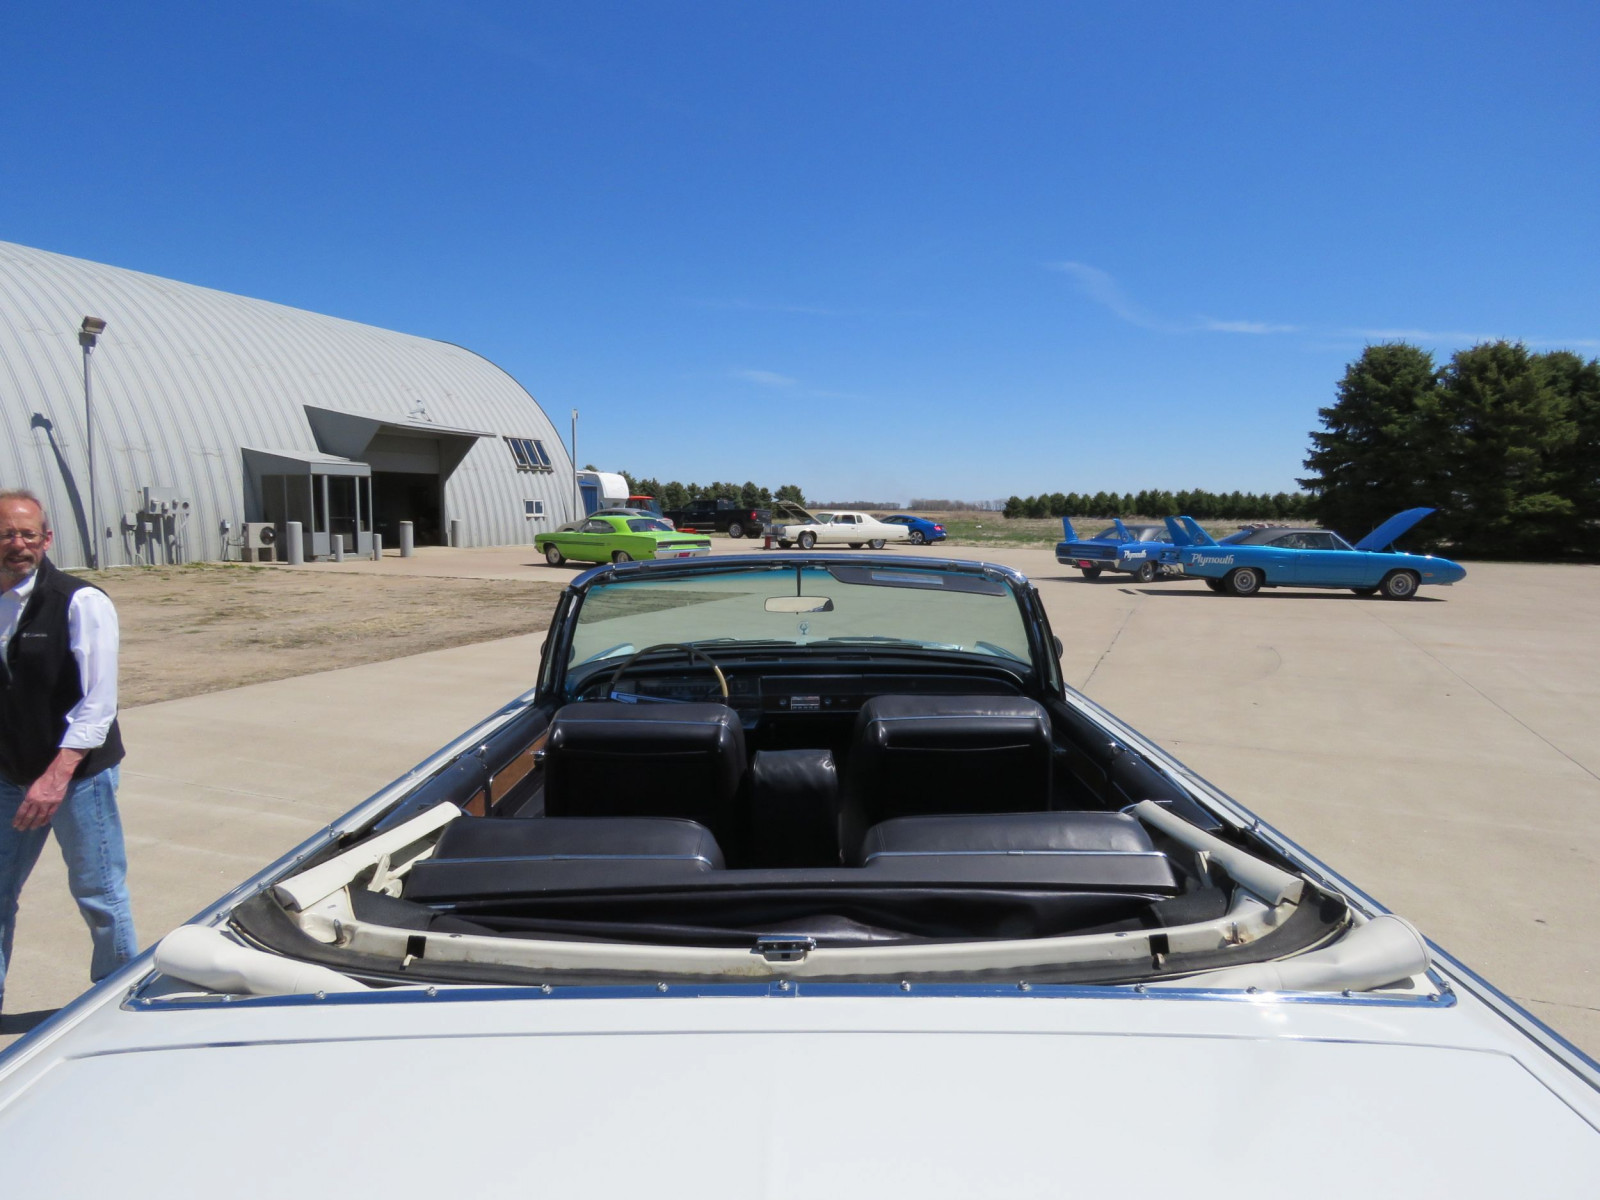 1965 Chrysler Imperial Crown Convertible - Image 7